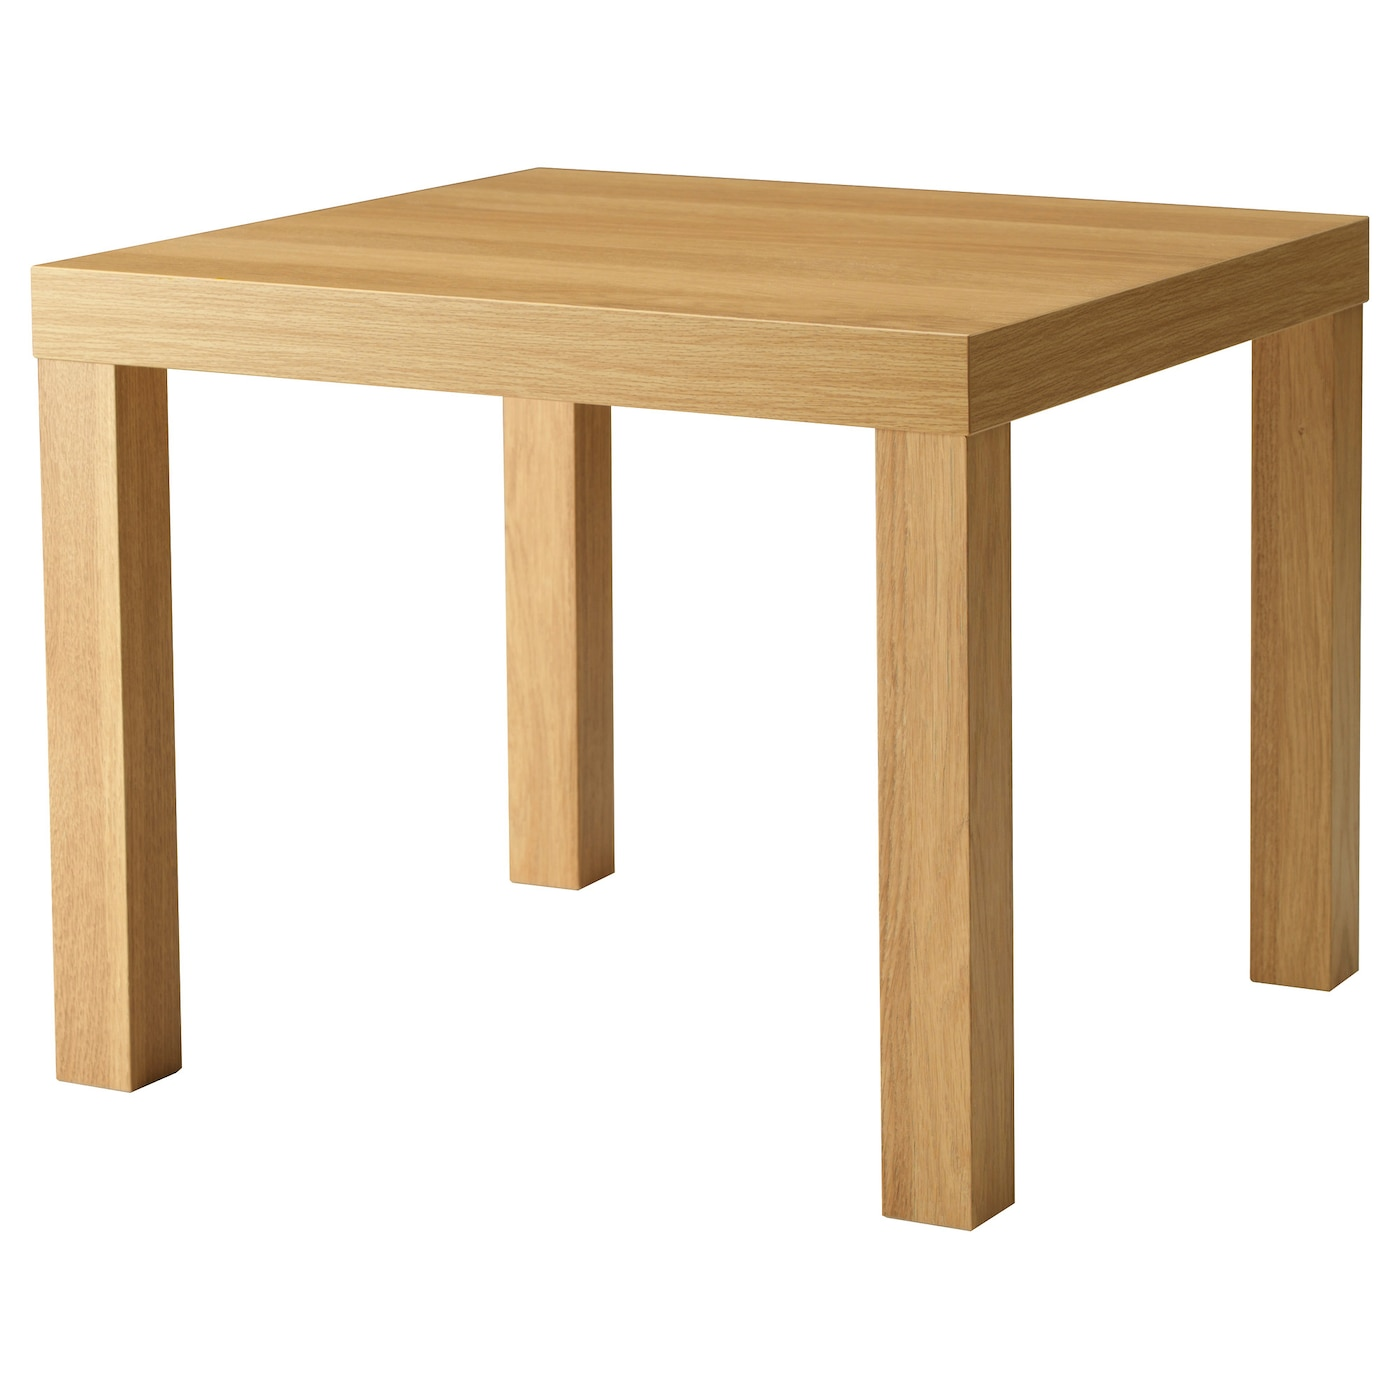 lack side table oak effect 55 x 55 cm ikea. Black Bedroom Furniture Sets. Home Design Ideas